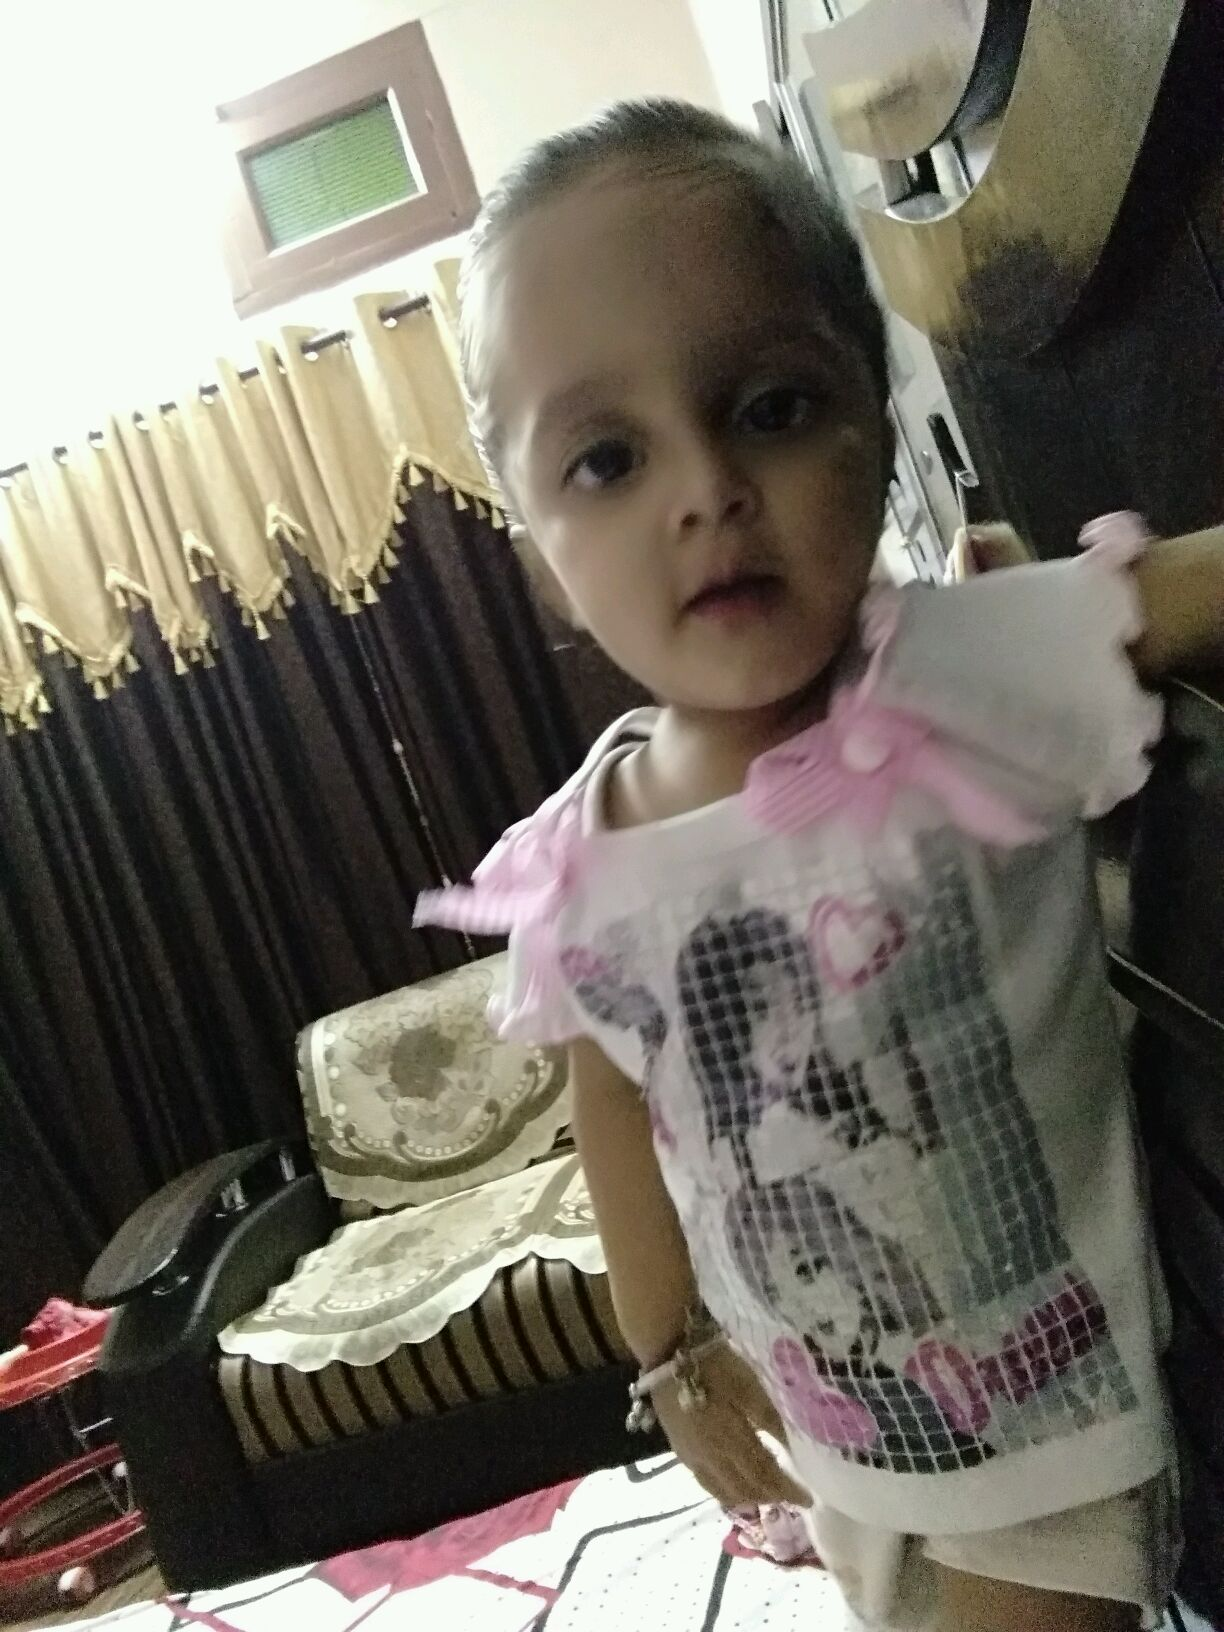 Hello mam my baby is 20 months old she is very underweight